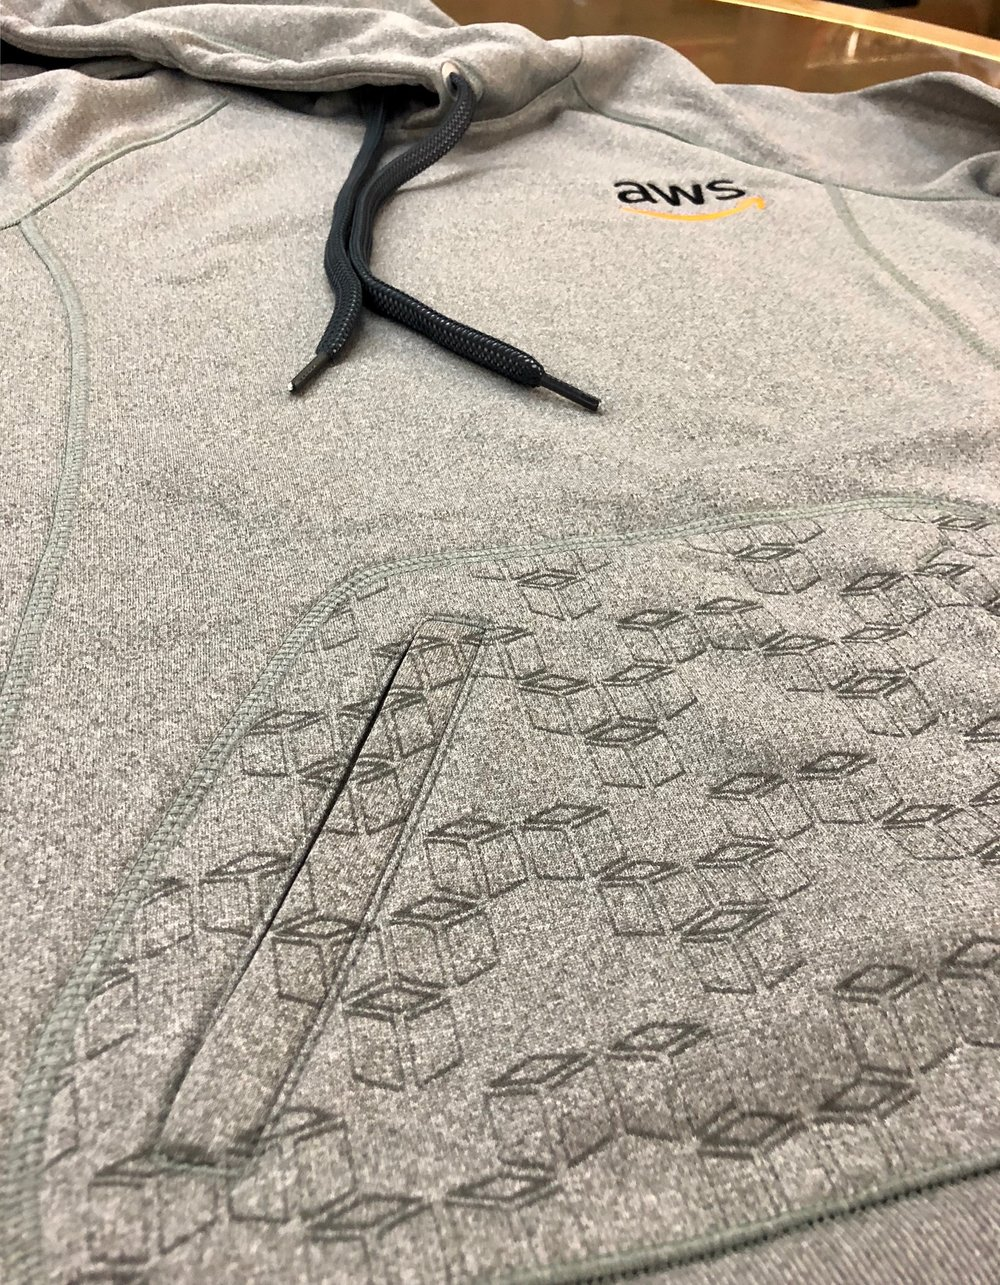 logounltd_laser_etching_embroidery_screen_printing_apparel_uniform_custom_tshirts_dye_sublimation_kirkland_bellevue_seattle_redmond_branded_merchandise_promotional_products_logo_unltd_amazon_aws (15).jpg